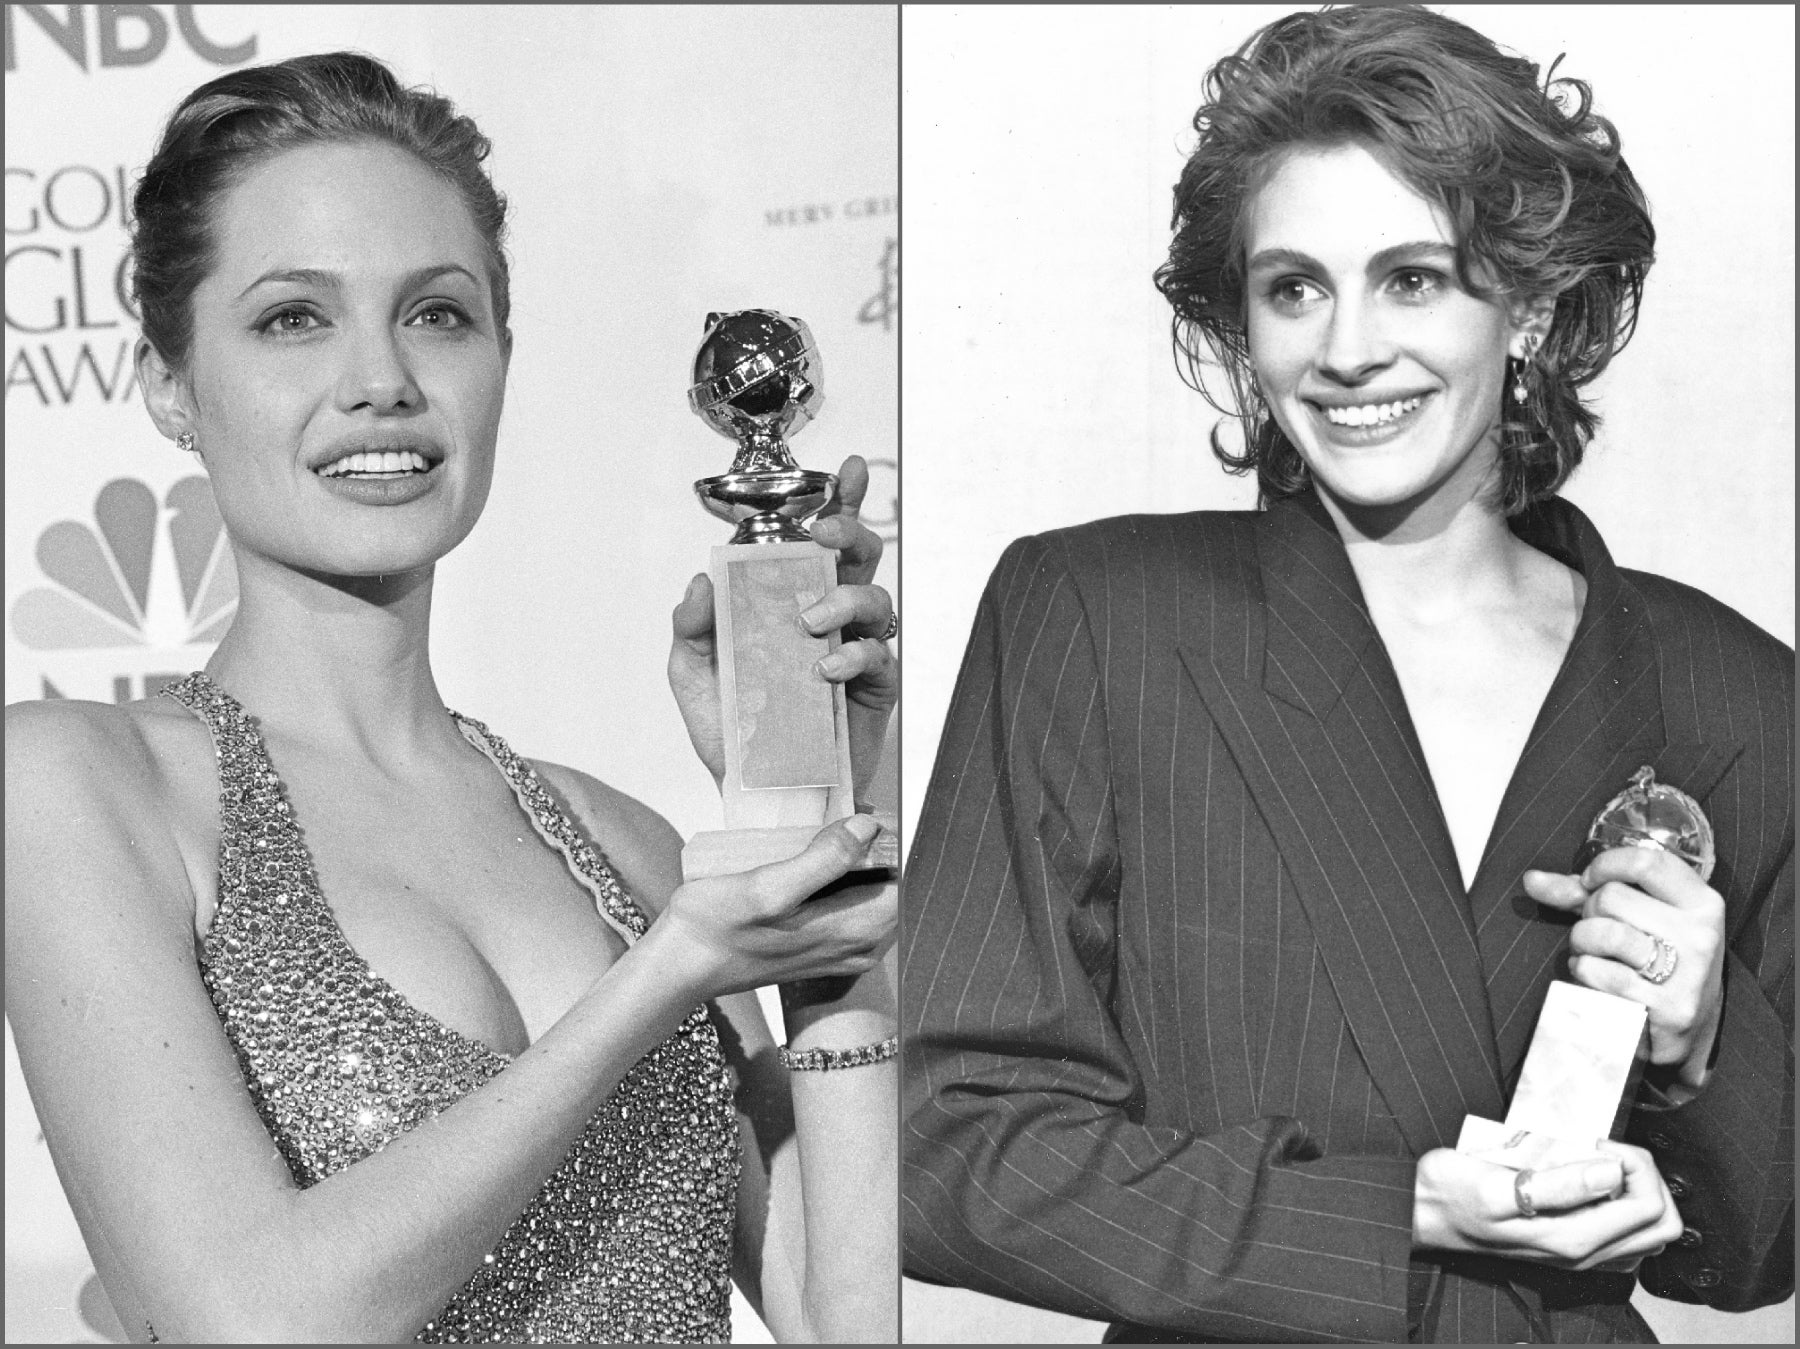 Julia Roberts in 1991 and Angelina Jolie in 1999, wining Golden Globes